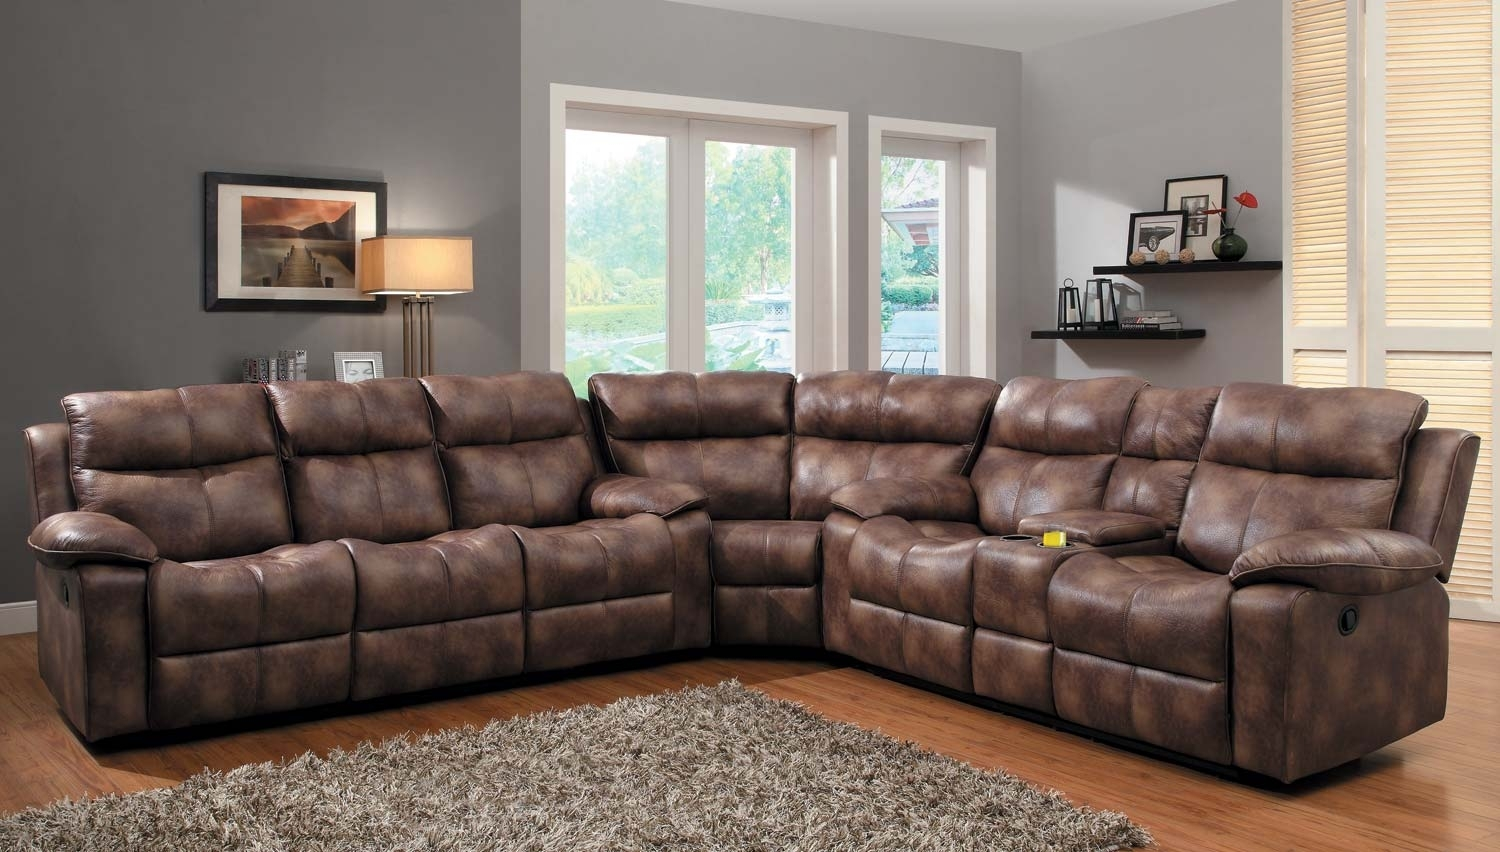 sofa into bed deep leather set 10 43 choices of sectional sofas that turn beds